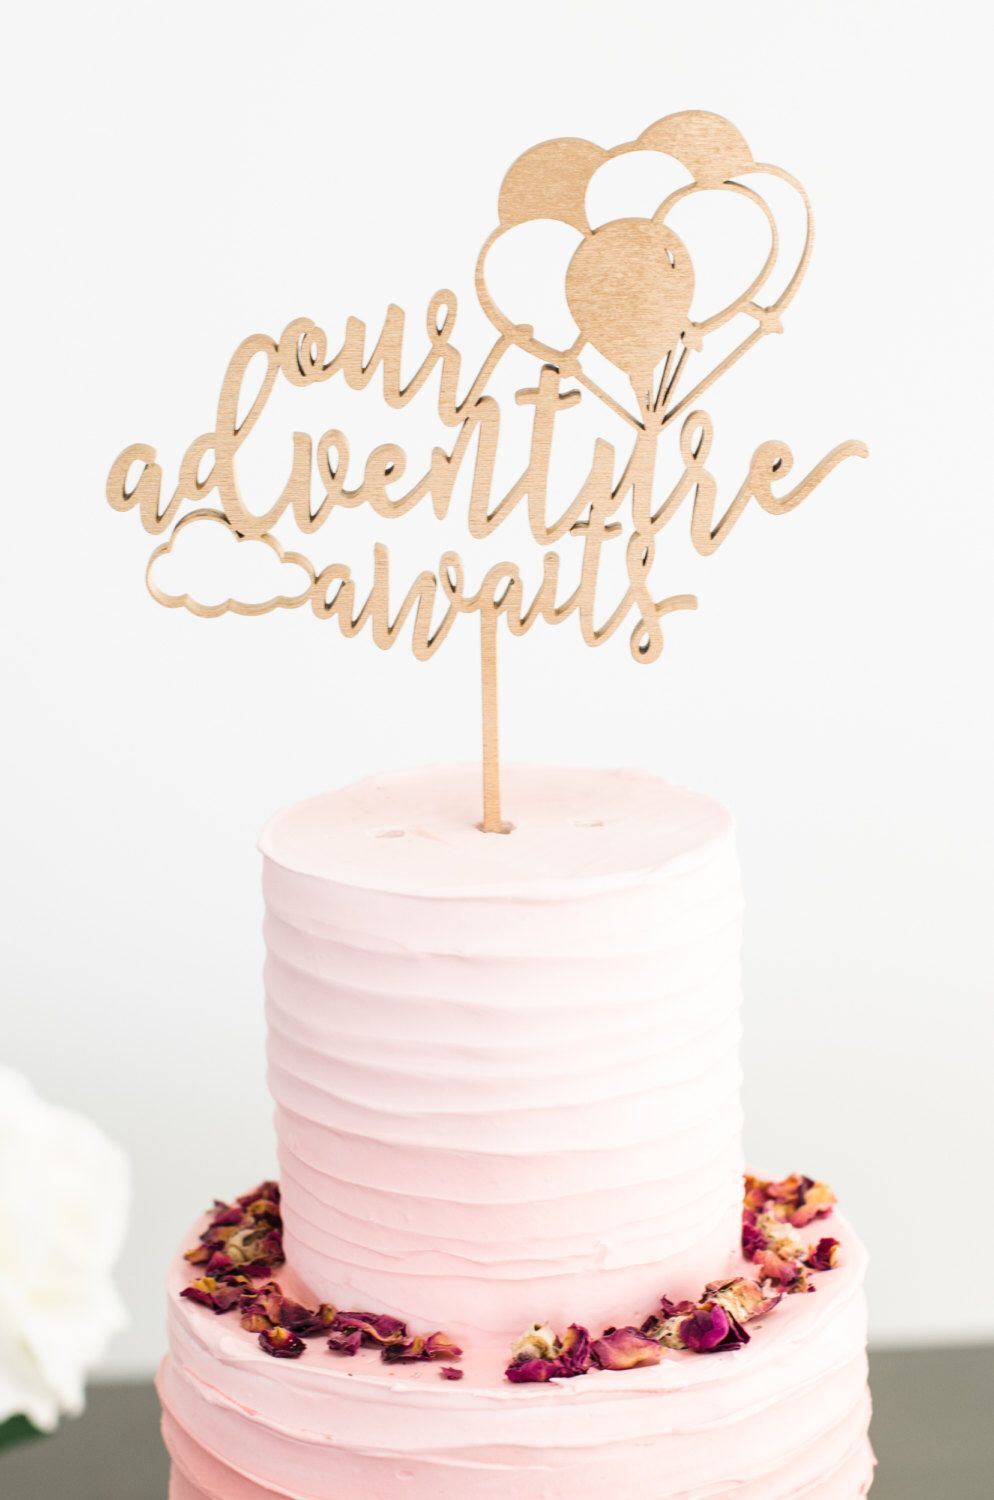 Our Adventure Awaits Gold Cake Topper